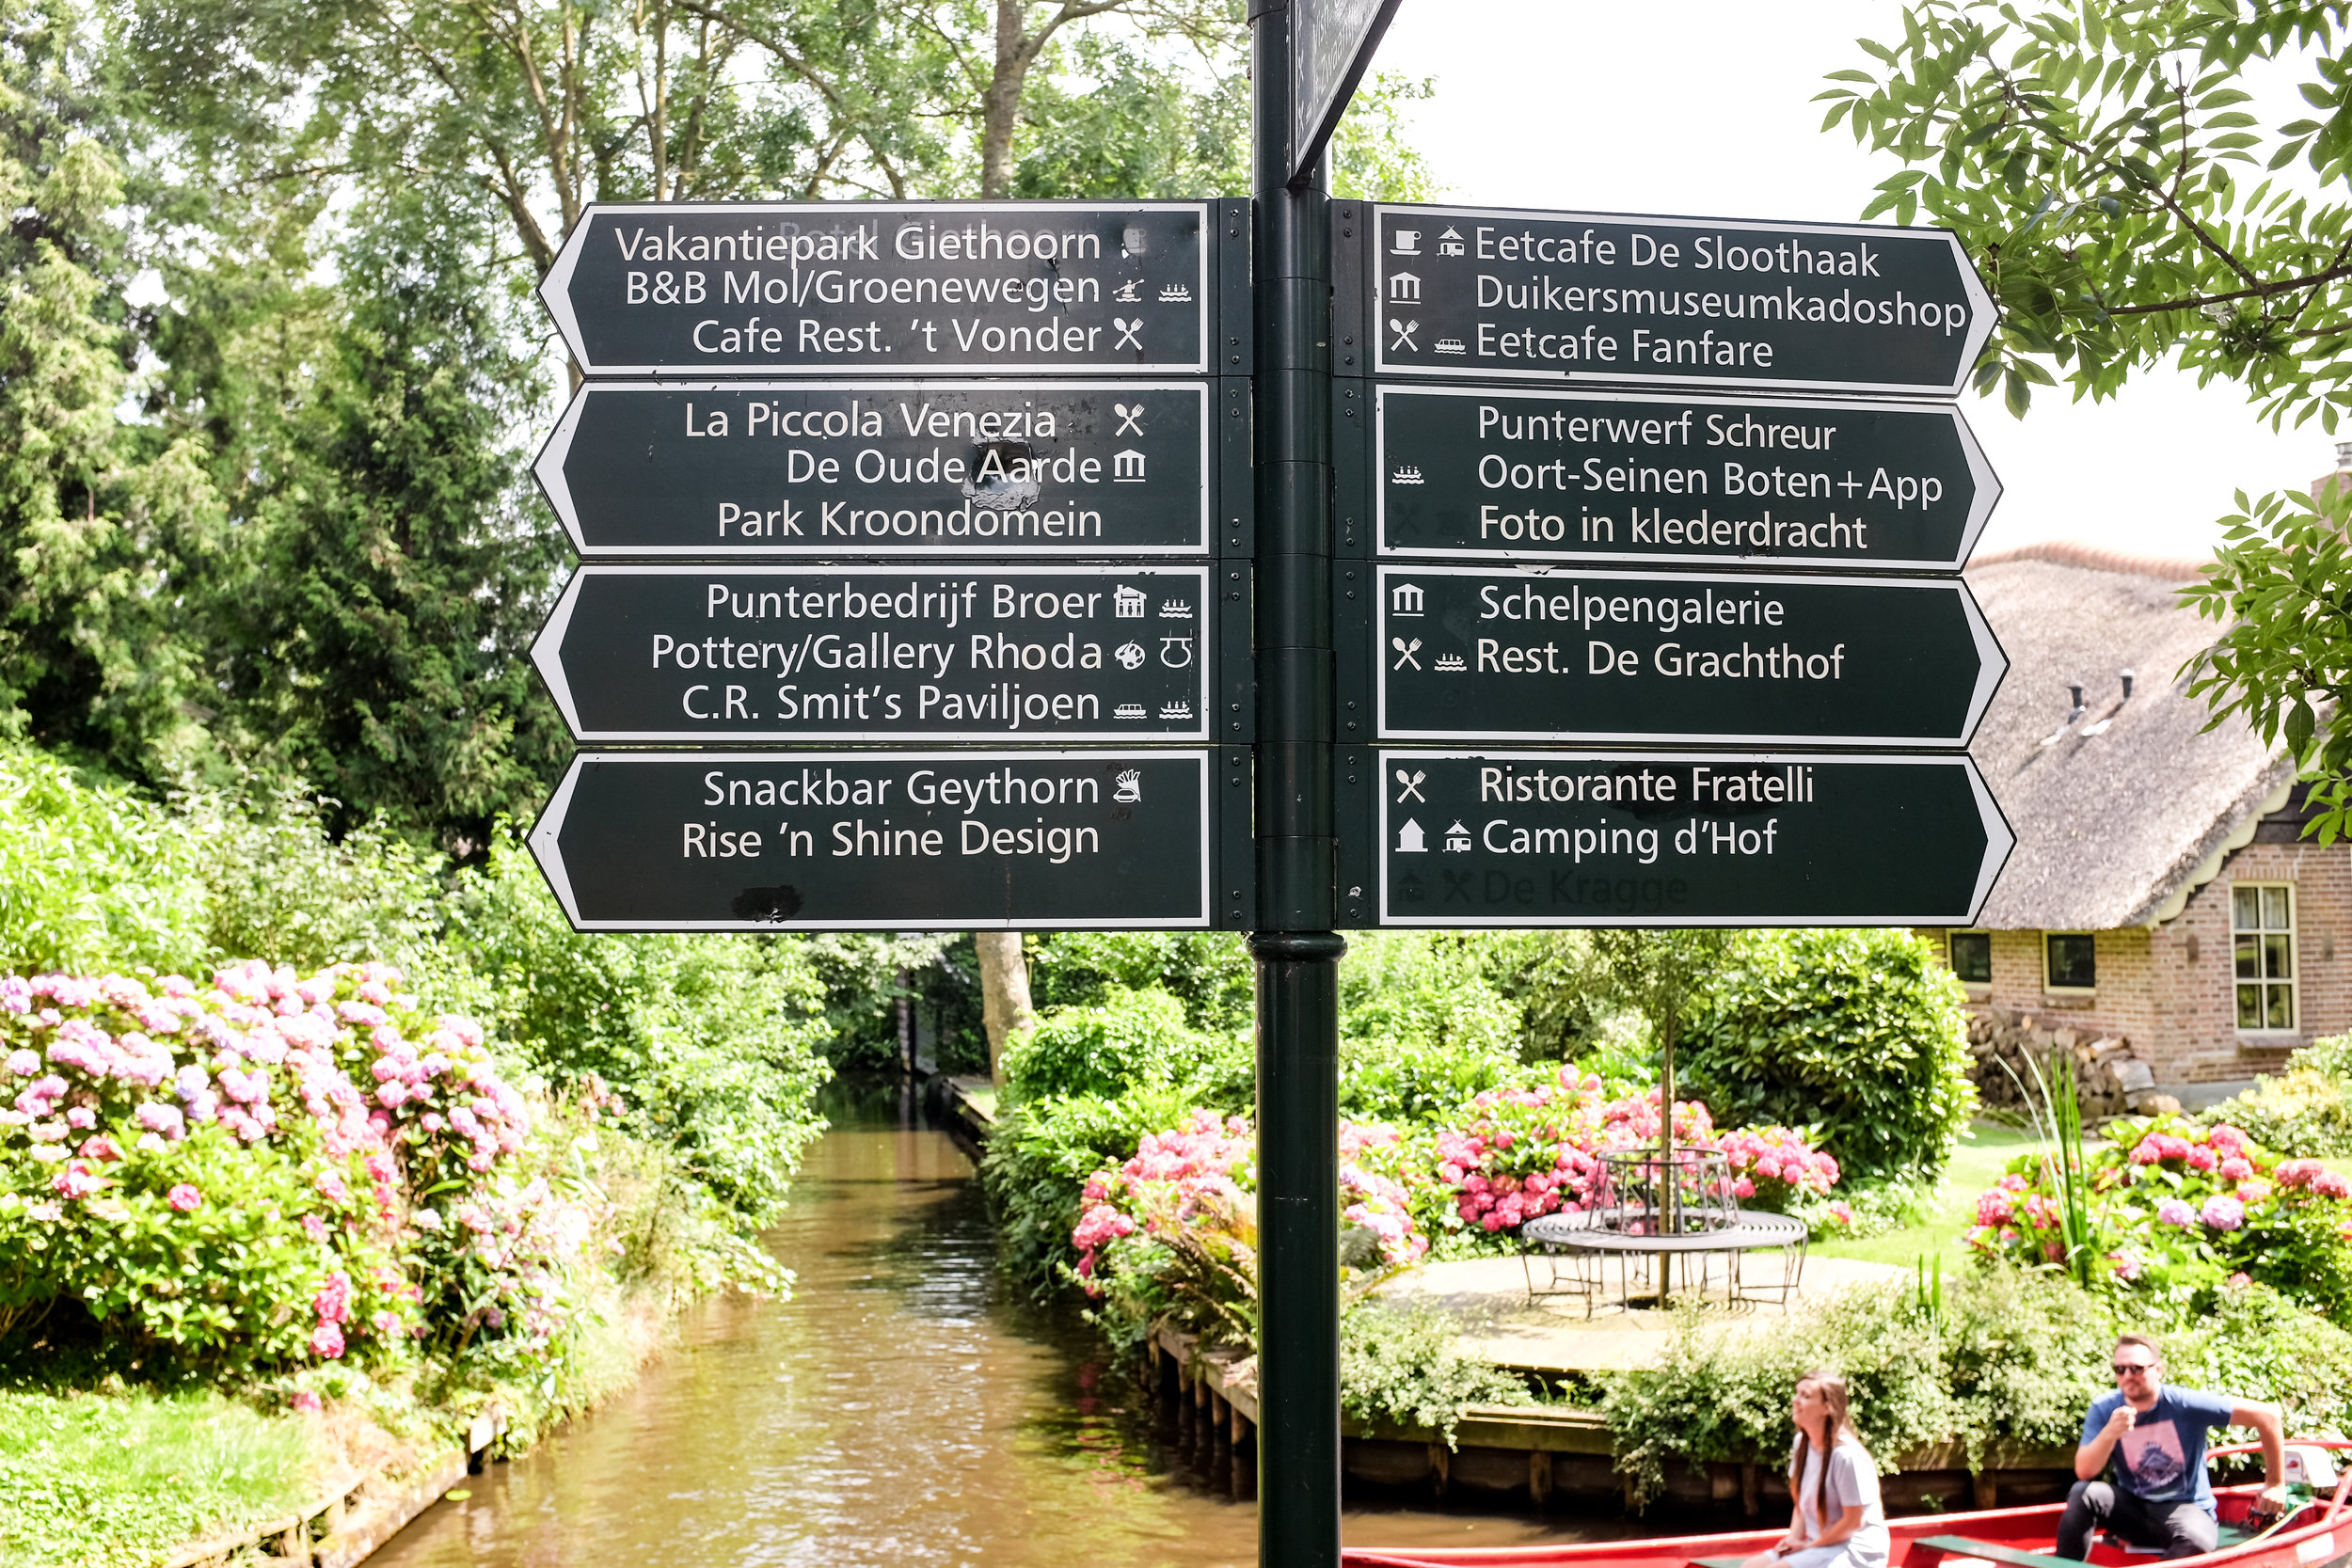 Other things to do in Giethoorn apart from renting the boat